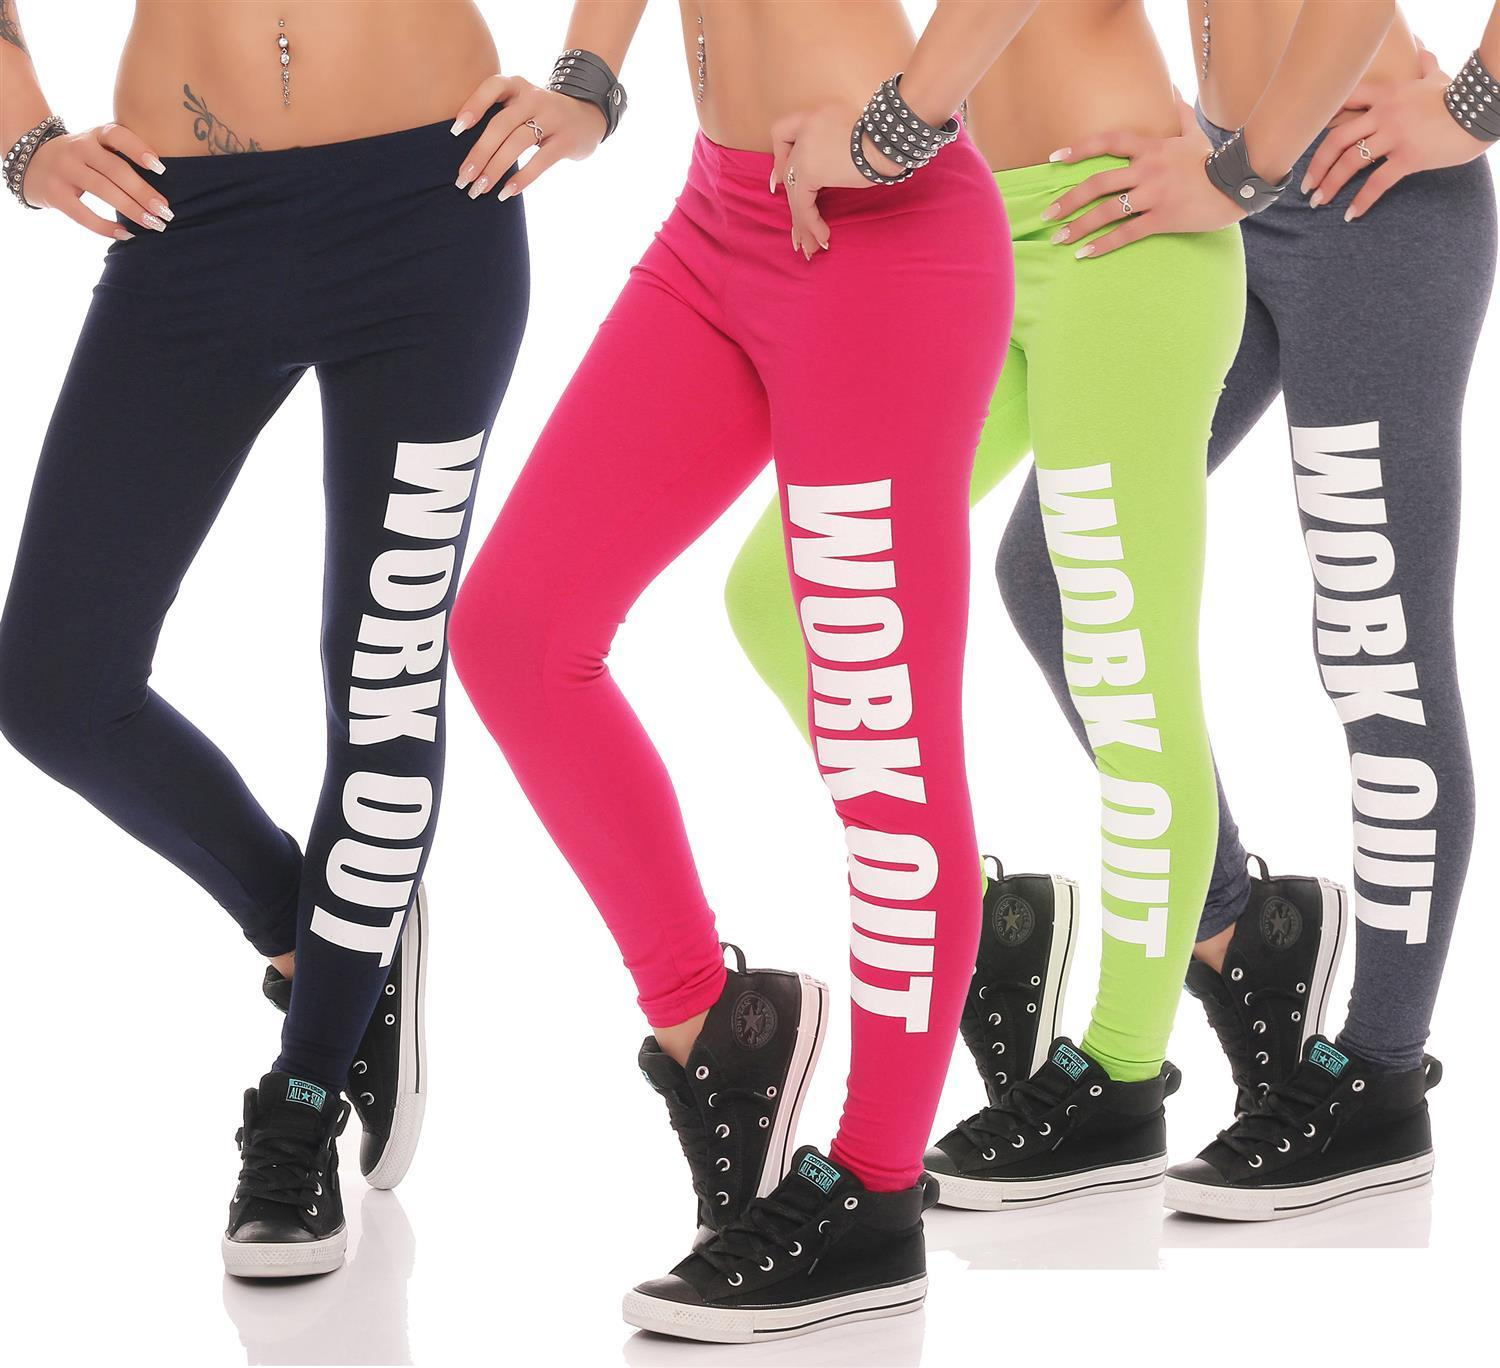 Leggings  WORK OUT Sporthose Baumwolle in 18 FarbenGr. S M L XL XXL 3XL 4XL